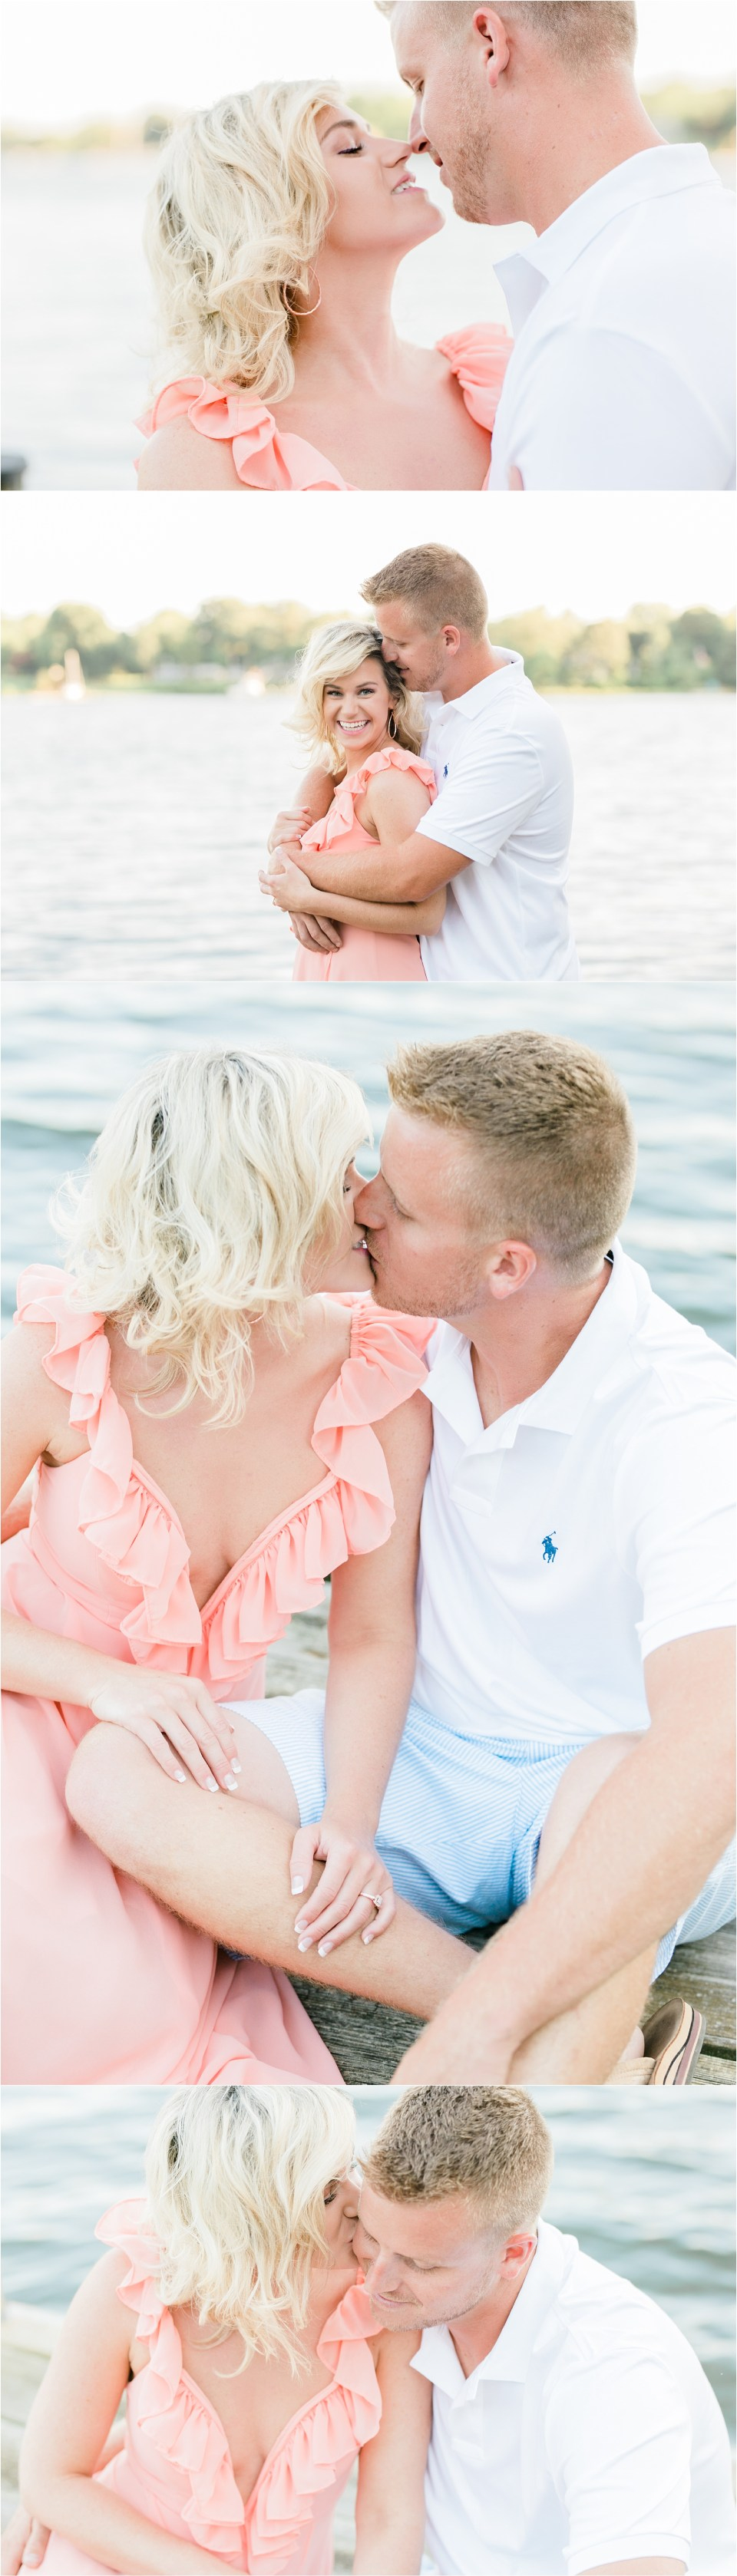 Costola Photography | Maryland Engagement Photographer | Boat Engagement Session